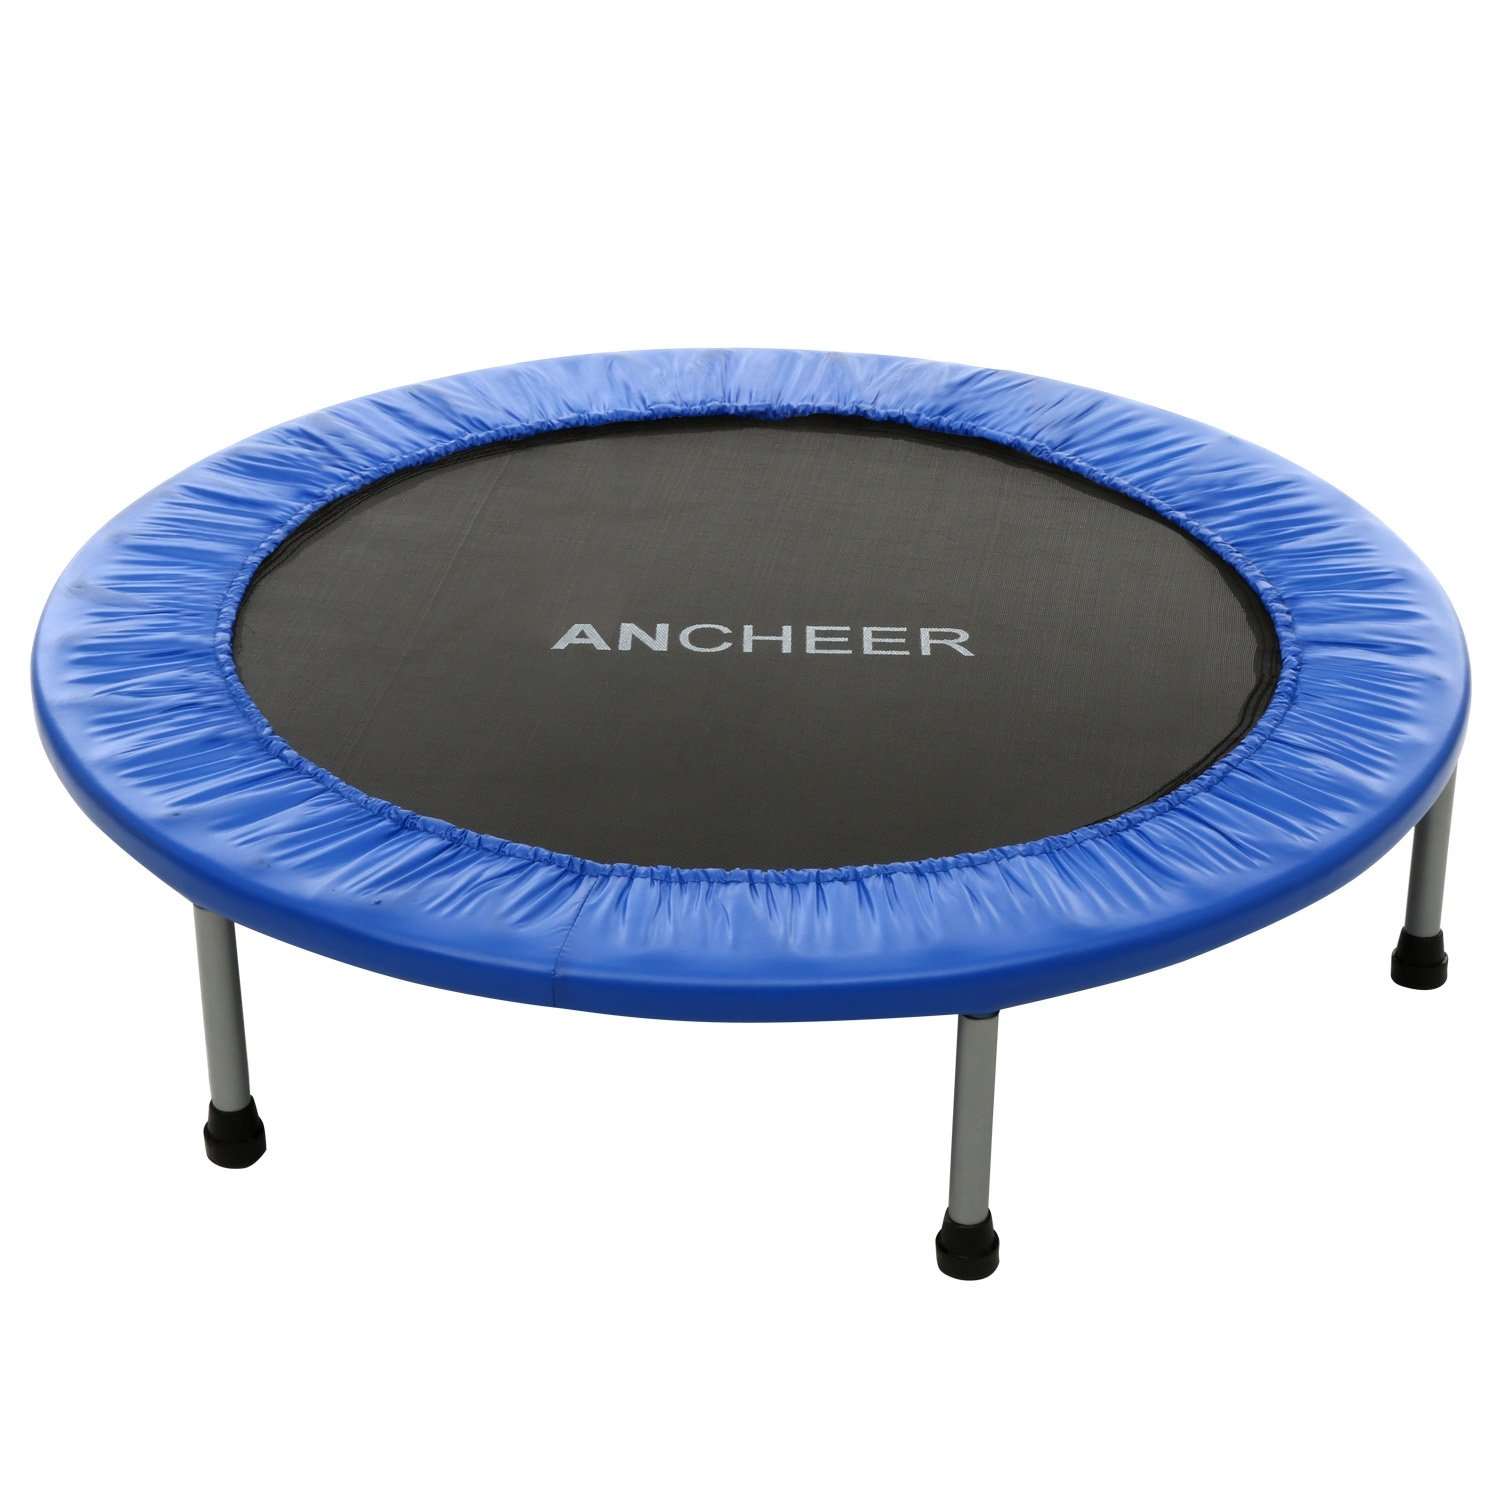 ANCHEER Max Load 220lbs Rebounder Trampoline with Safety Pad for Indoor Garden Workout Cardio Training (2 Sizes: 38 inch/40 inch, Two Modes: Folding/Not Folding) by ANCHEER (Image #9)